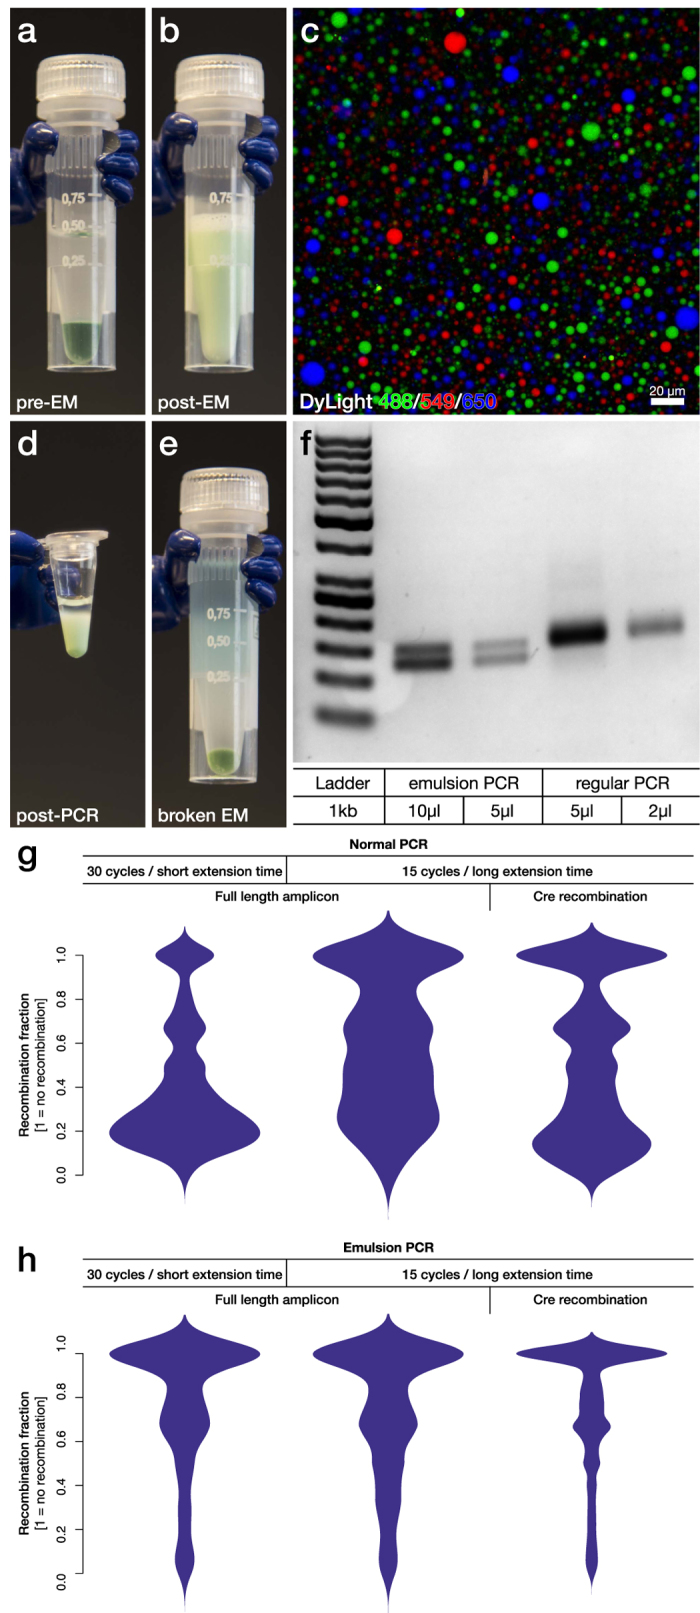 Development and characterization of an optimized emulsion PCR protocol. (a) An optimized, large scale, emulsion PCR protocol was developed to reduce template switching in the generation of amplicons for Ion Torrent and Illumina sequencing. A 50 μl PCR reaction (Phusion Hot Start with green buffer) was mixed with mineral oil and surfactant. (b) The mix was converted into a large scale emulsion using a Fast Prep homogenizer in 5 minutes. (c) To evaluate the stability and size distribution of the formed micelles, three separate PCR reactions were prepared and labels with different water soluble fluorophores (DyLight 488, 549 and 650 respectively) and made into three emulsion reactions. After mixing together the three emulsions through repeated pipetting the reaction was imaged and quantified using laser-scanning confocal microscopy emulsion. Quantification resulted in a mean diameter of the micelles of 3.7 ± 2.3 μm and a total micelle count of 2.6 × 10 8 per individual reaction. (d) The emulsion was then divided into 6 individual PCR tubes and covered with mineral oil, which remain stable after PCR. (e) Isobutanol was then used to break the emulsion. (f) The compartmentalization of a PCR reaction by emPCR enables even amplification of an equimolar mixture of two oligonucleotides (126 and 150 bp long) with identical flanking sequences but with known difference in PCR efficiency. (g) Formation of chimeras due to template switching was analysed through a comparative experiment utilizing the long amplicon library 3, containing a 1 kb long stretch of constitutive backbone which can be removed using Cre-recombinase ( Fig. 3c ). With regular PCR, this library displayed extensive template switching regardless of PCR protocol or length of constitutive sequence. (h) Using emPCR on the other hand, the template switching could be significantly reduced to a level where it became insensitive to both changes in PCR protocol and constitutive sequence length.